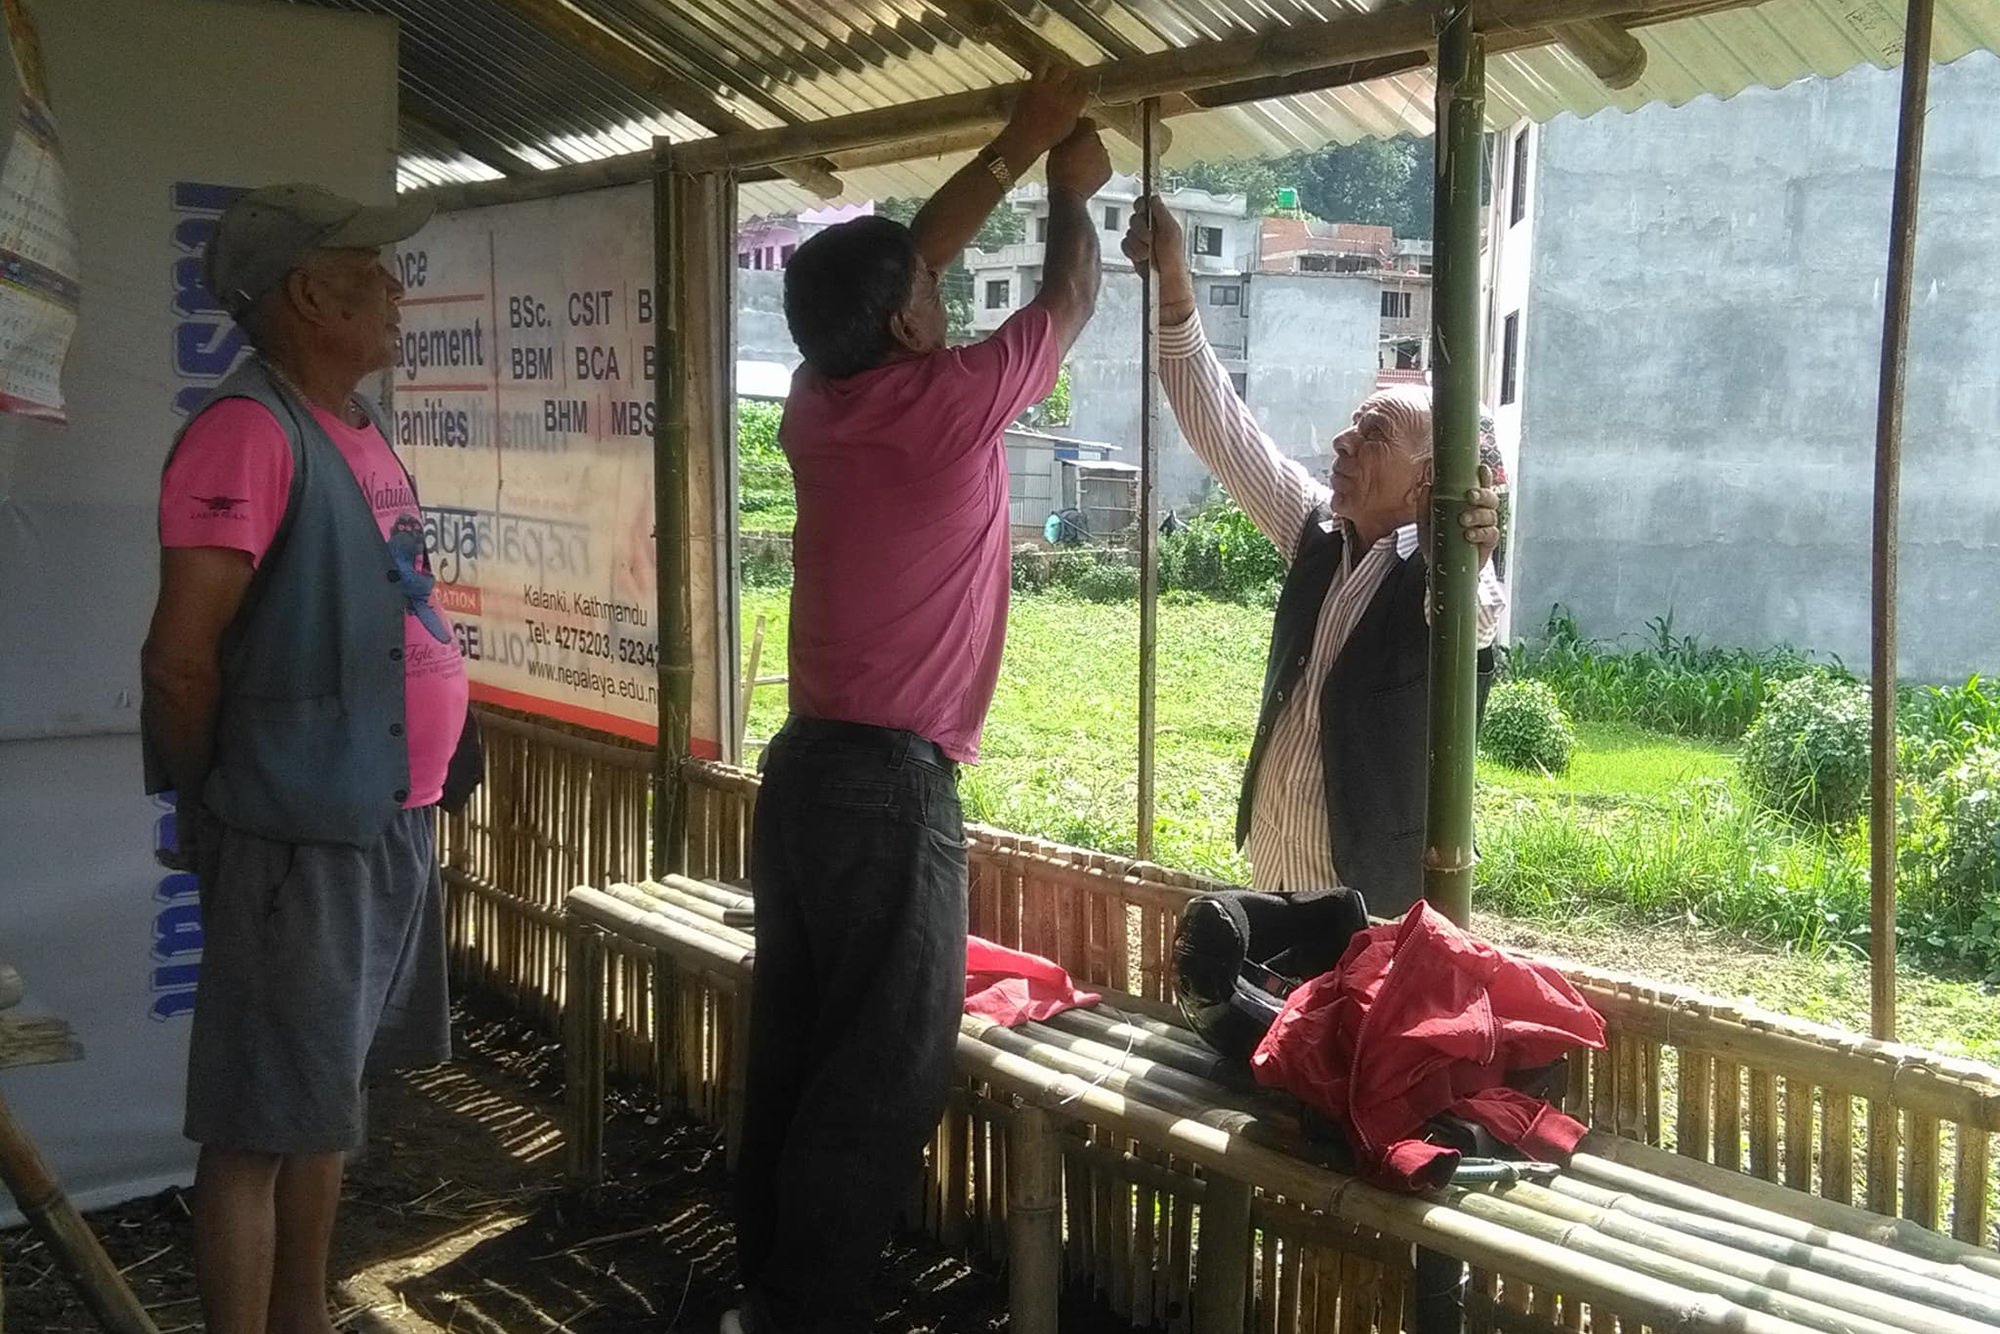 Nepal project updates: A larger vegetable garden and a new bamboo